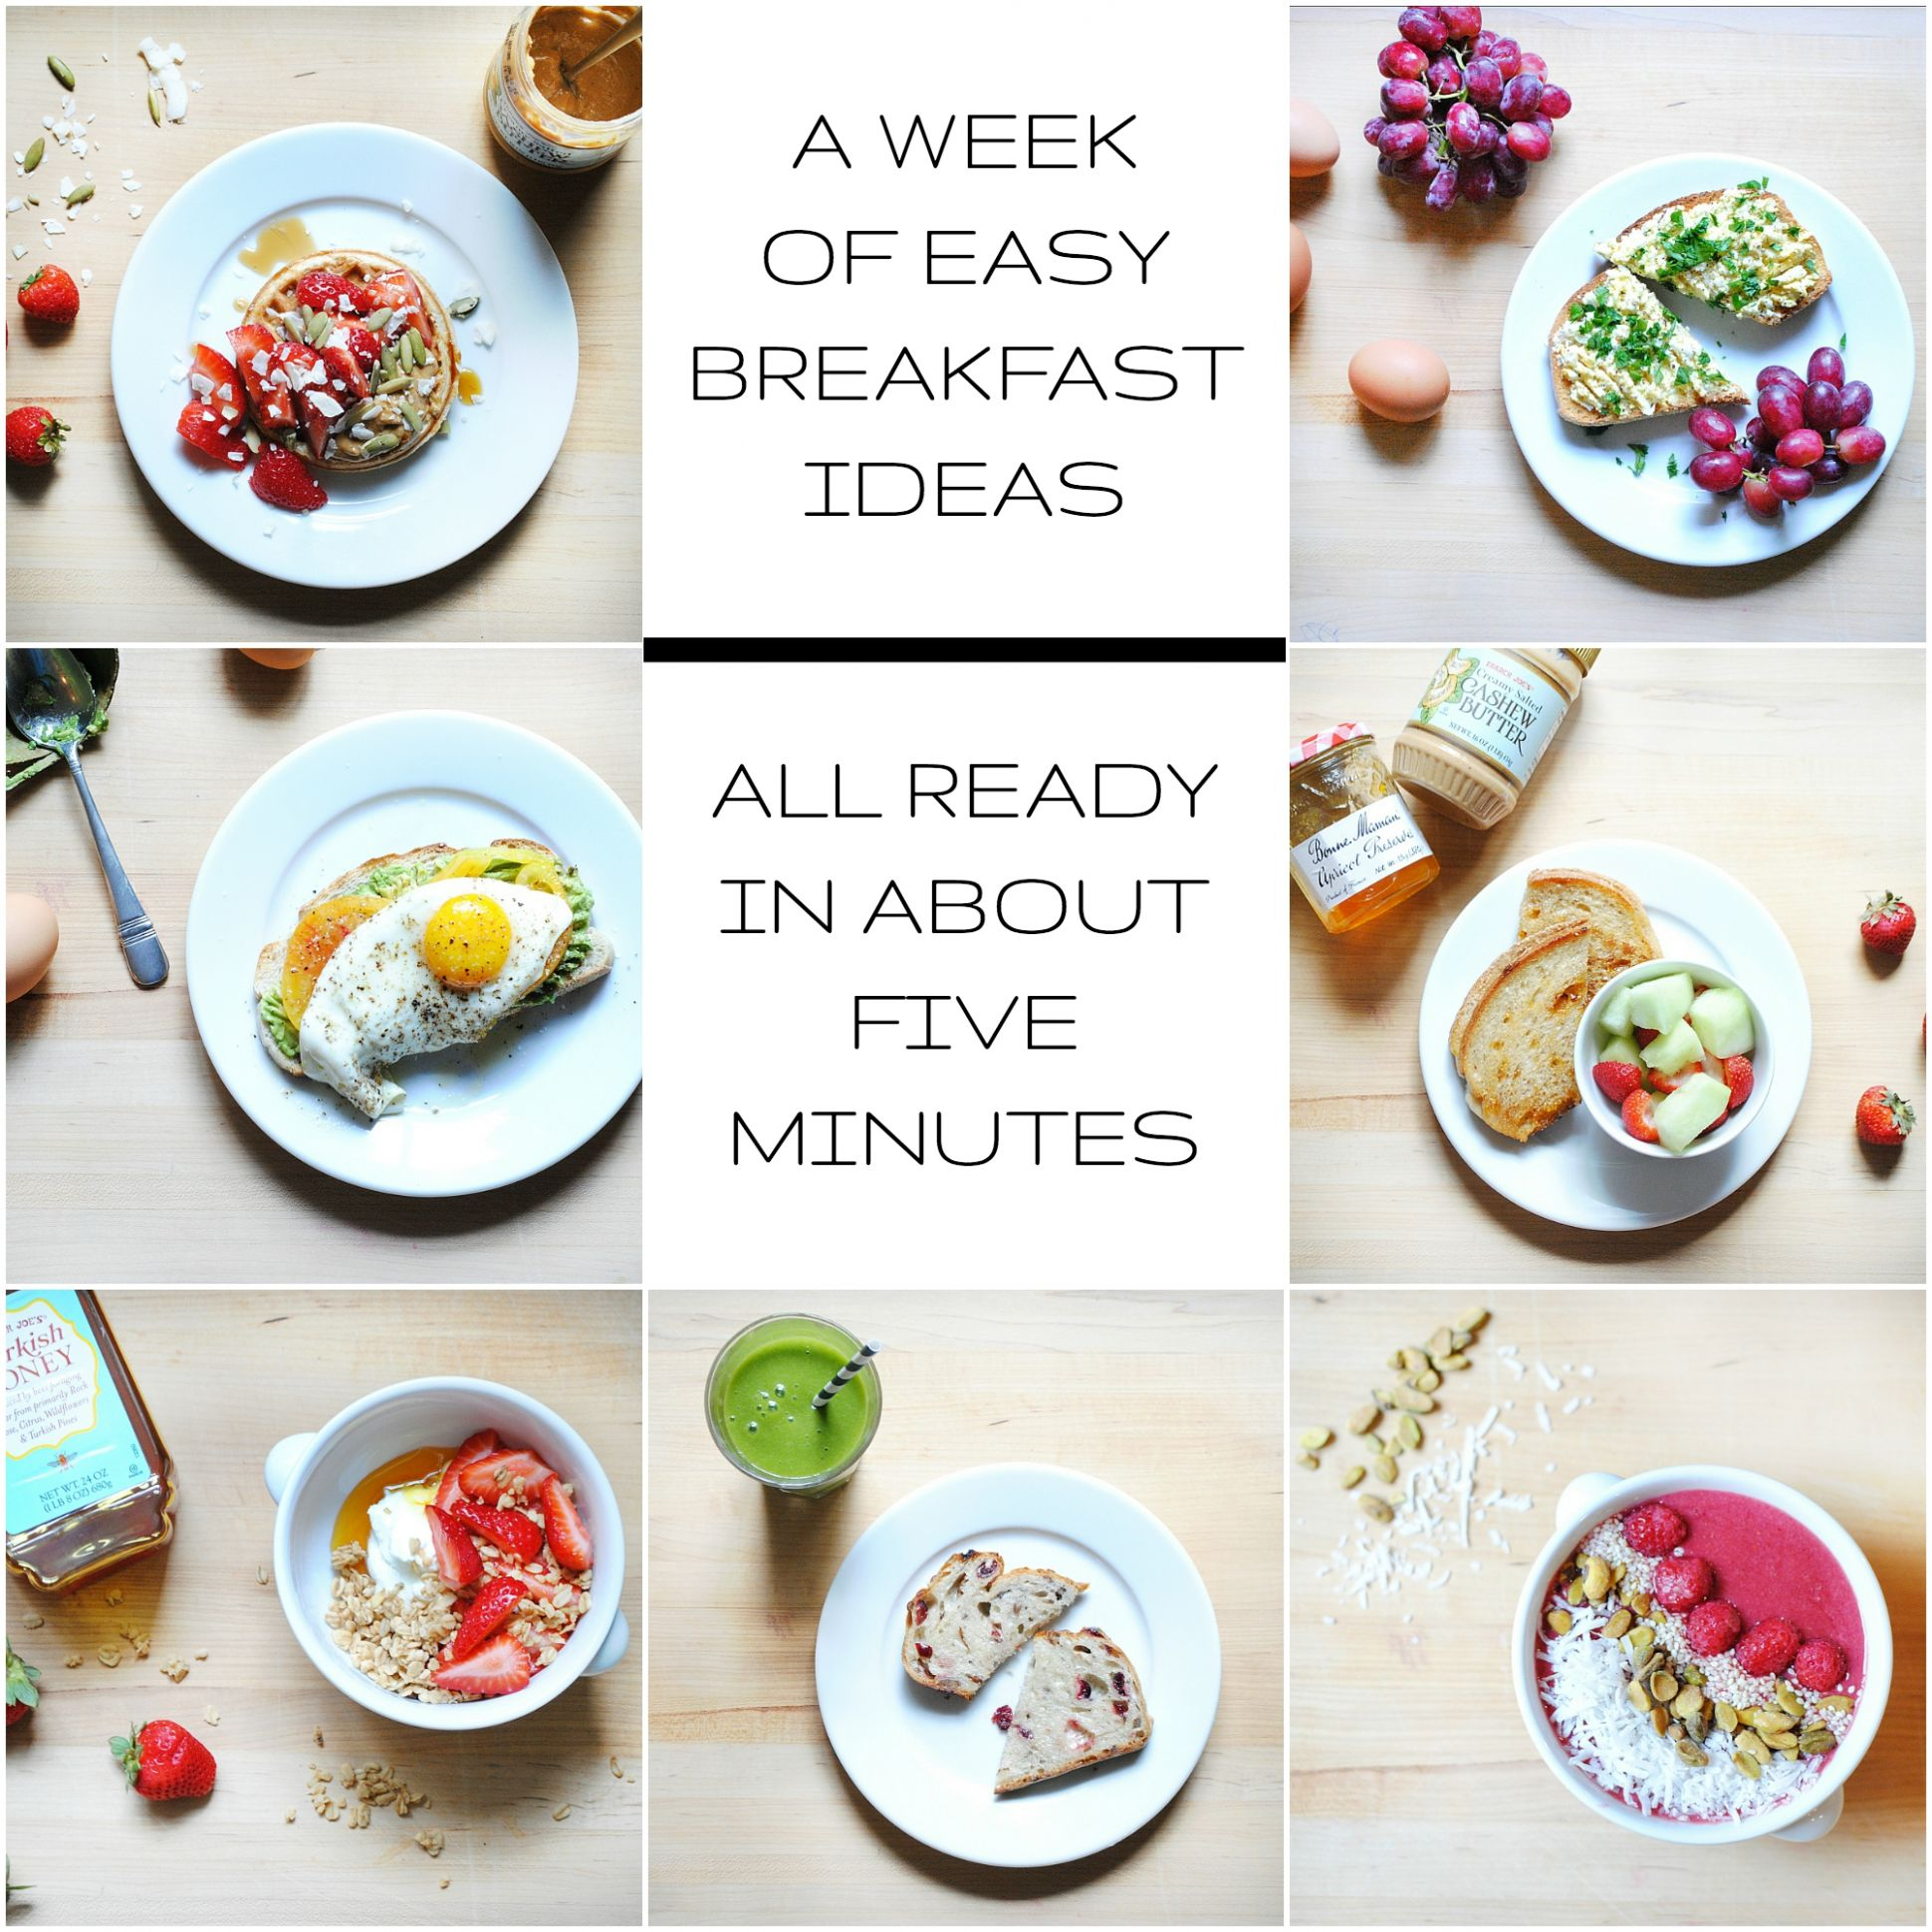 A Week of Healthy, Easy Breakfast Ideas - All Ready in About FIVE ..